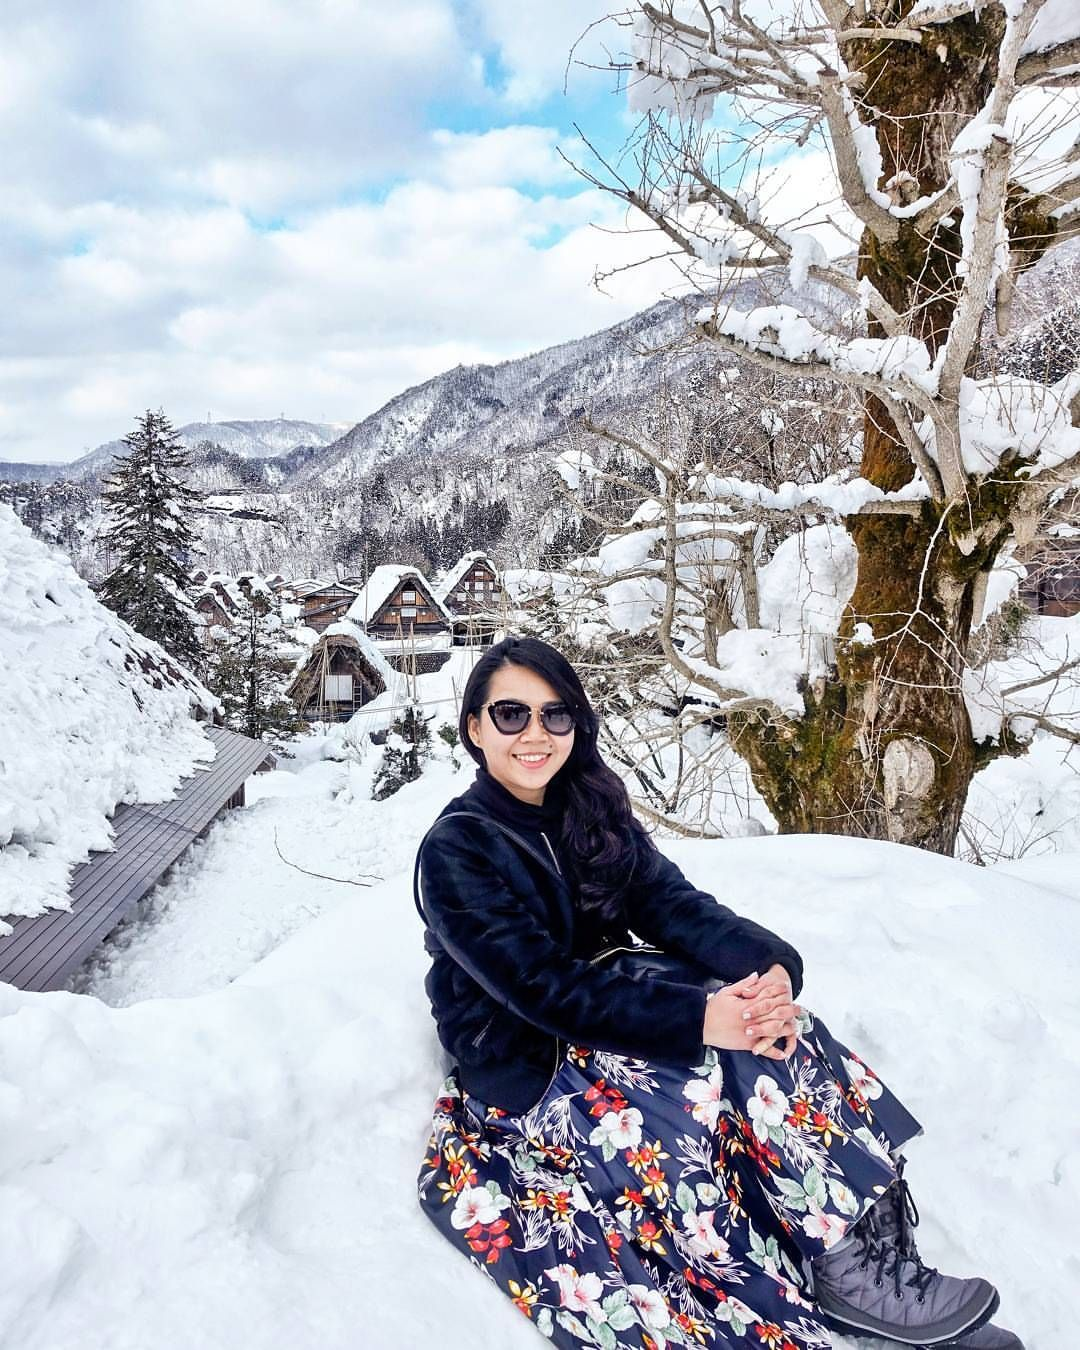 Best viewed in winter when everything is covered in pearly white fine snow. Shirakawa-go Village from the viewpoint, Ono District, Gifu Prefecture, Japan.  Instagram: @quennandher Miu Miu sunnies // TOPSHOP pleated floral skirt // H&M faux fur jacket